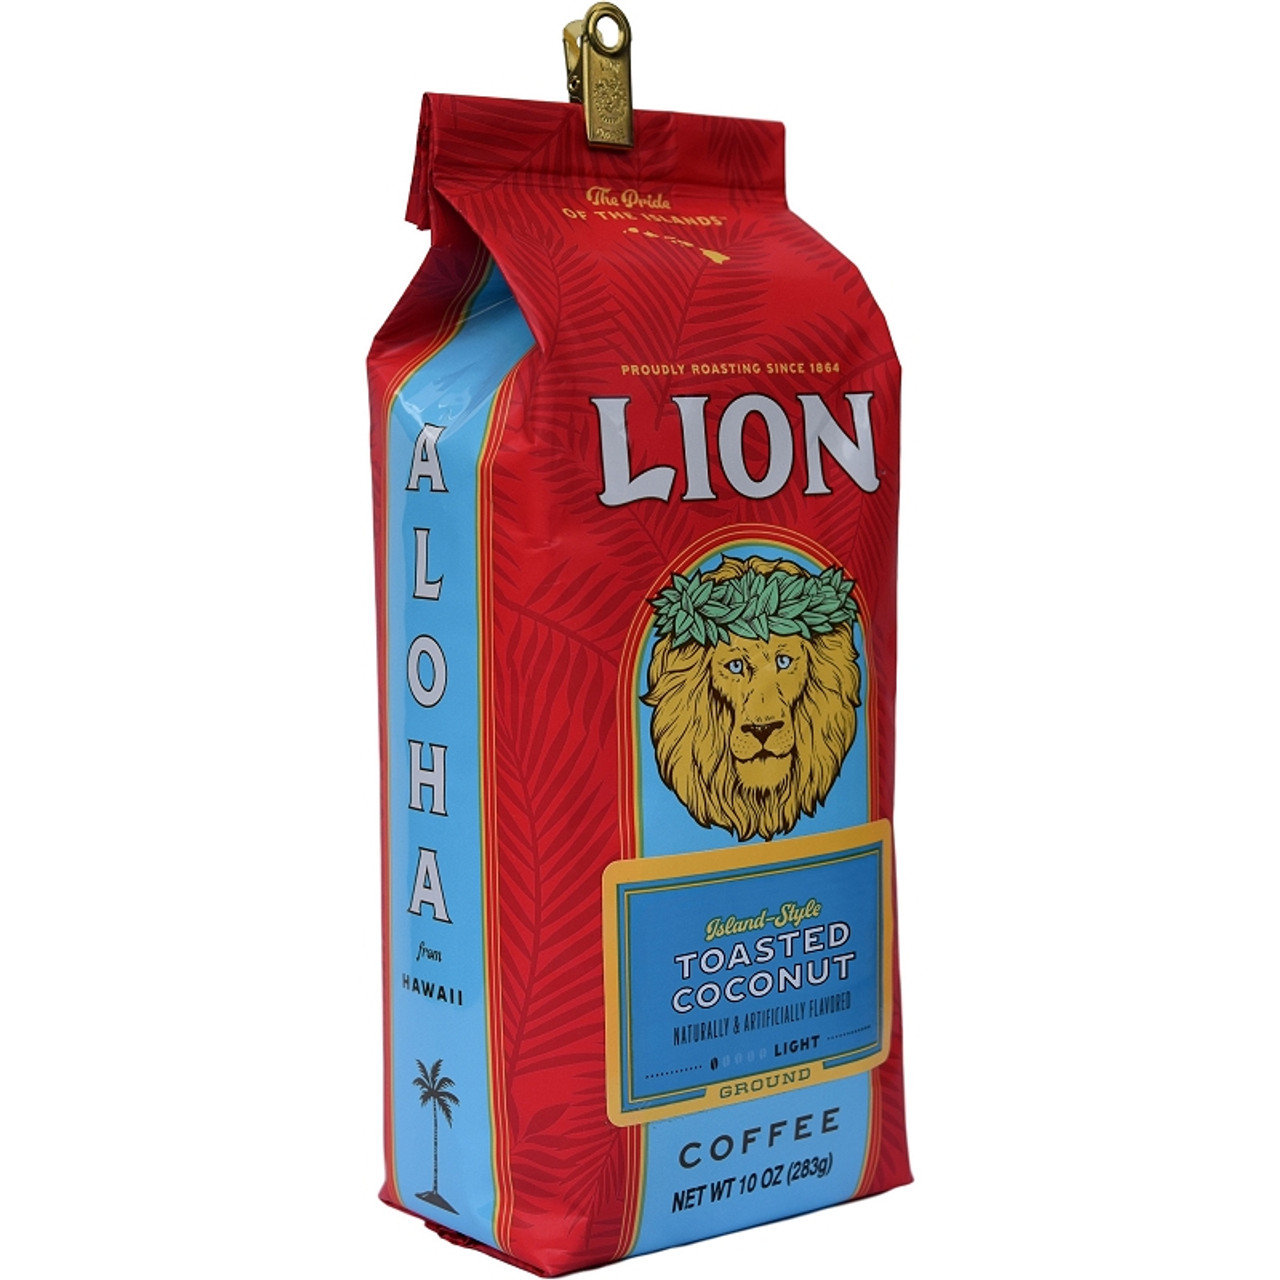 Lion Toasted Coconut